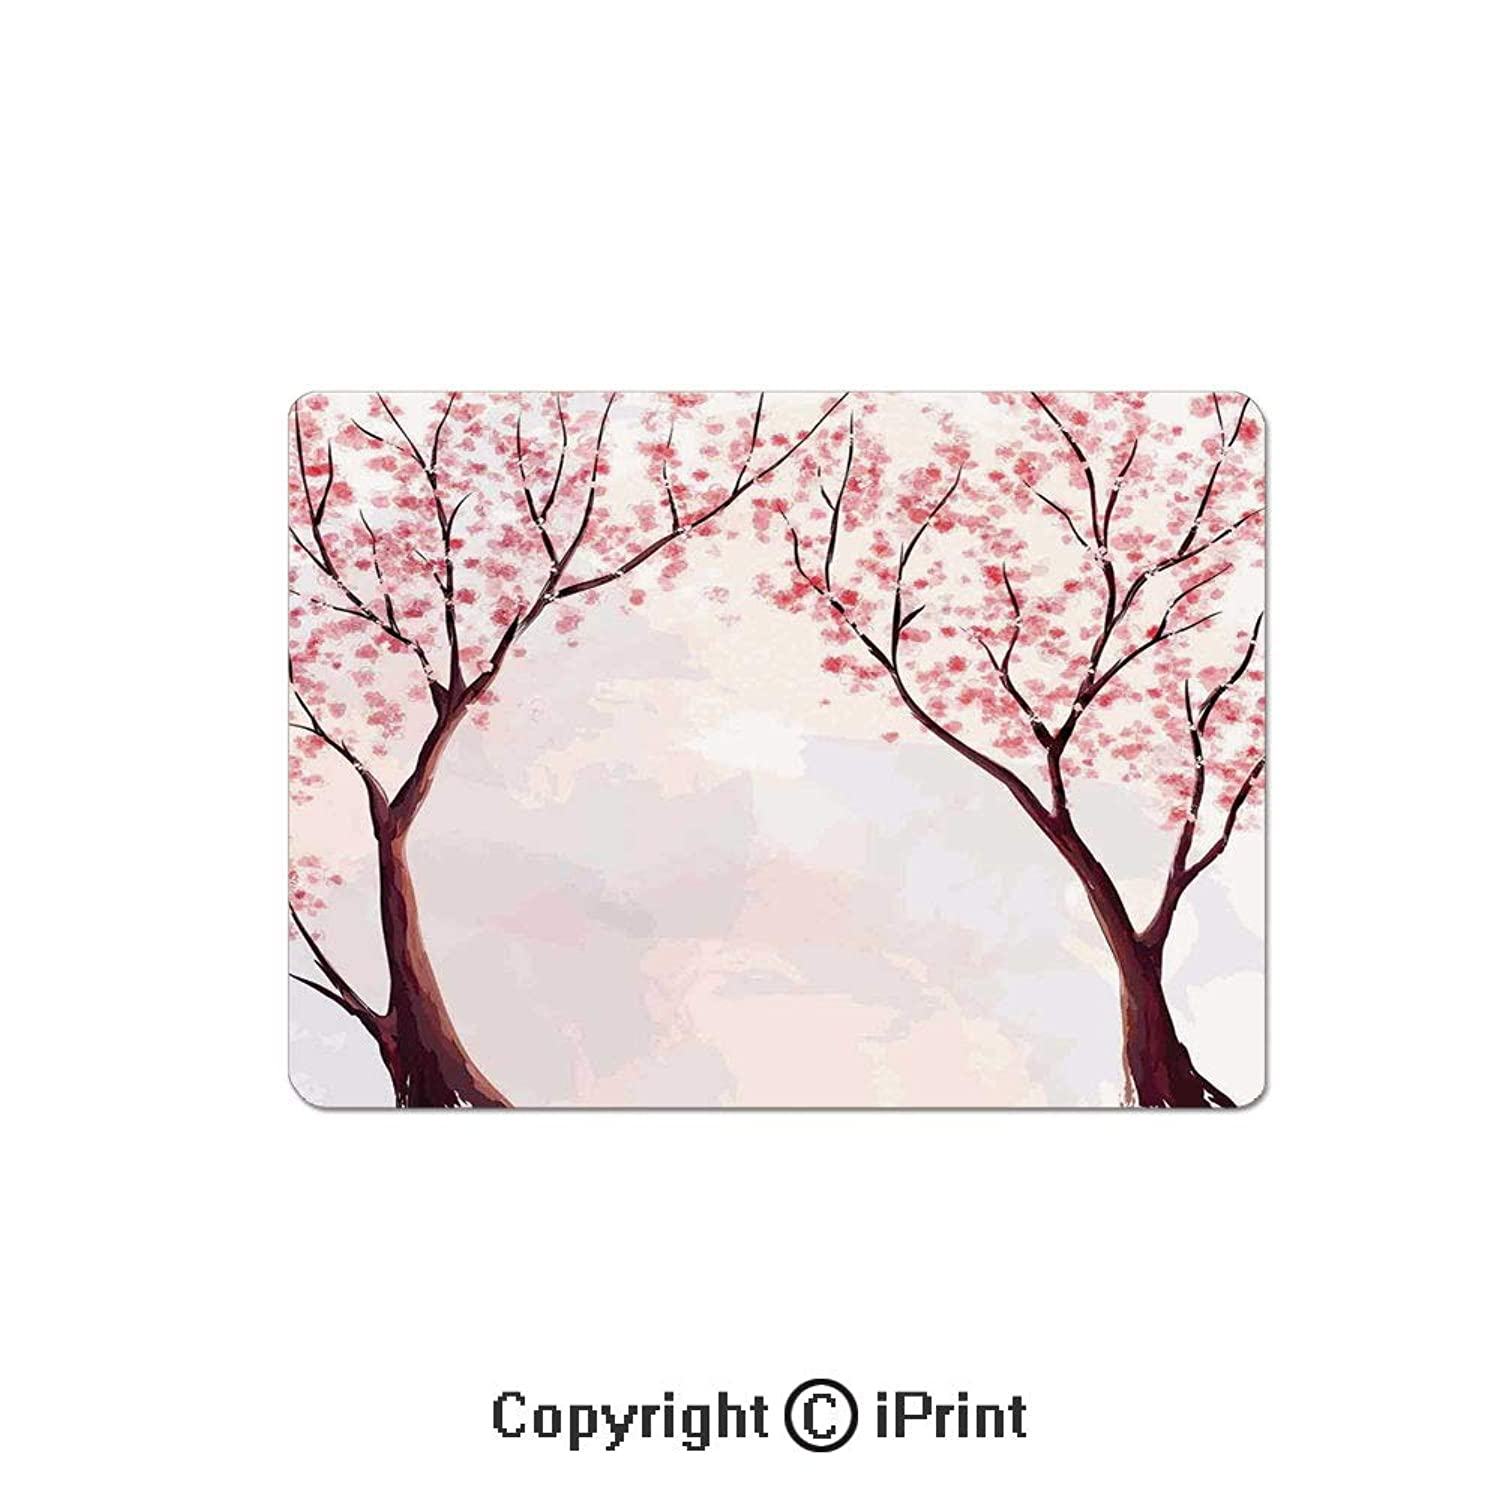 Oversized Mouse Pad,Japanese Floral Design Sakura Tree Cherry Blossom Spring Country Home Watercolor Style Gaming Keyboard Pad,9.8x11.8 inch Non-Slip Office Computer Desk Mat,Pastel Pink